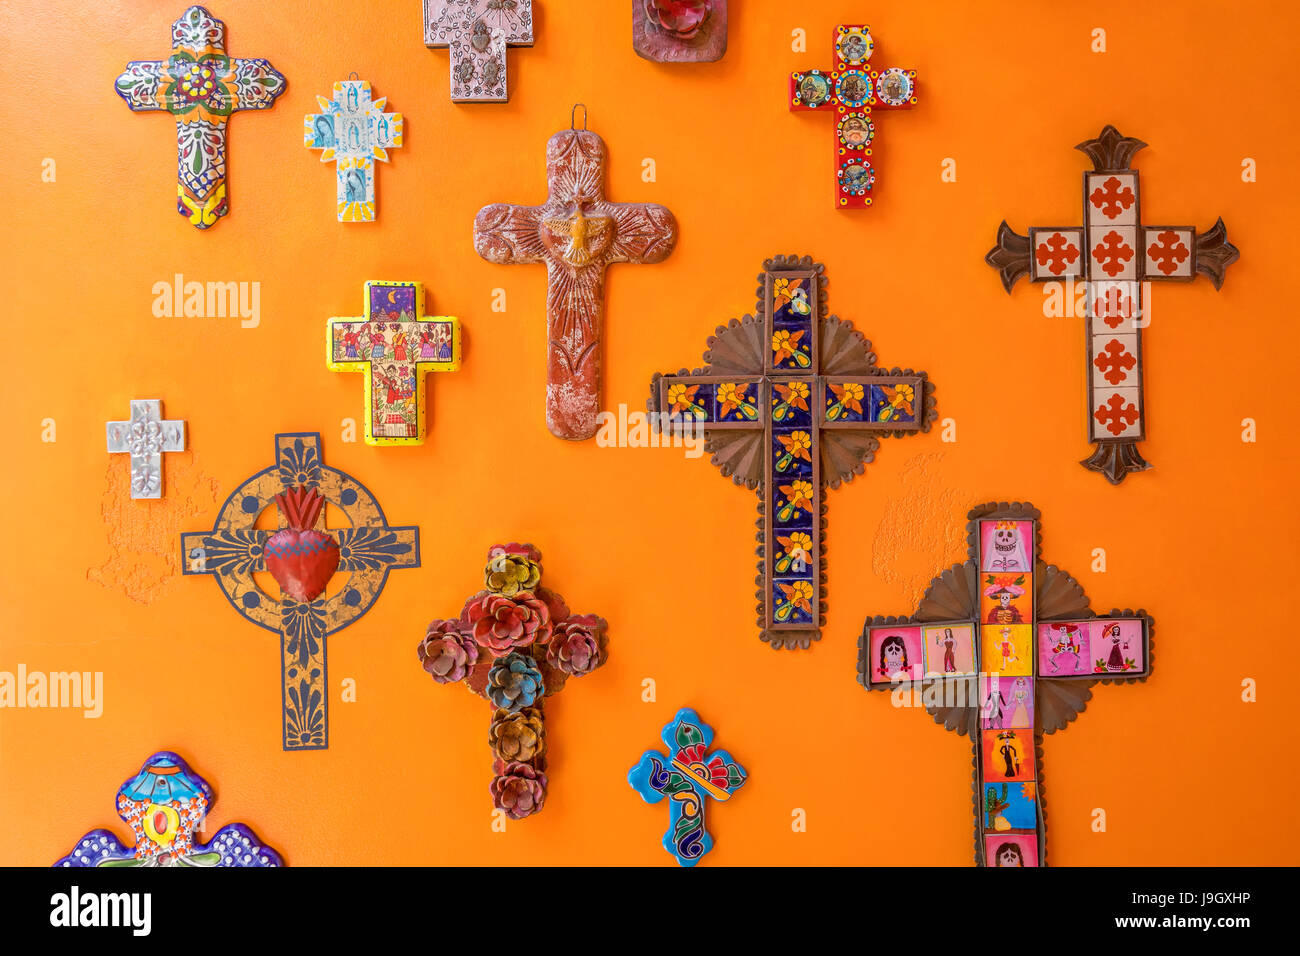 Various crosses decorating an orange wall - Stock Image